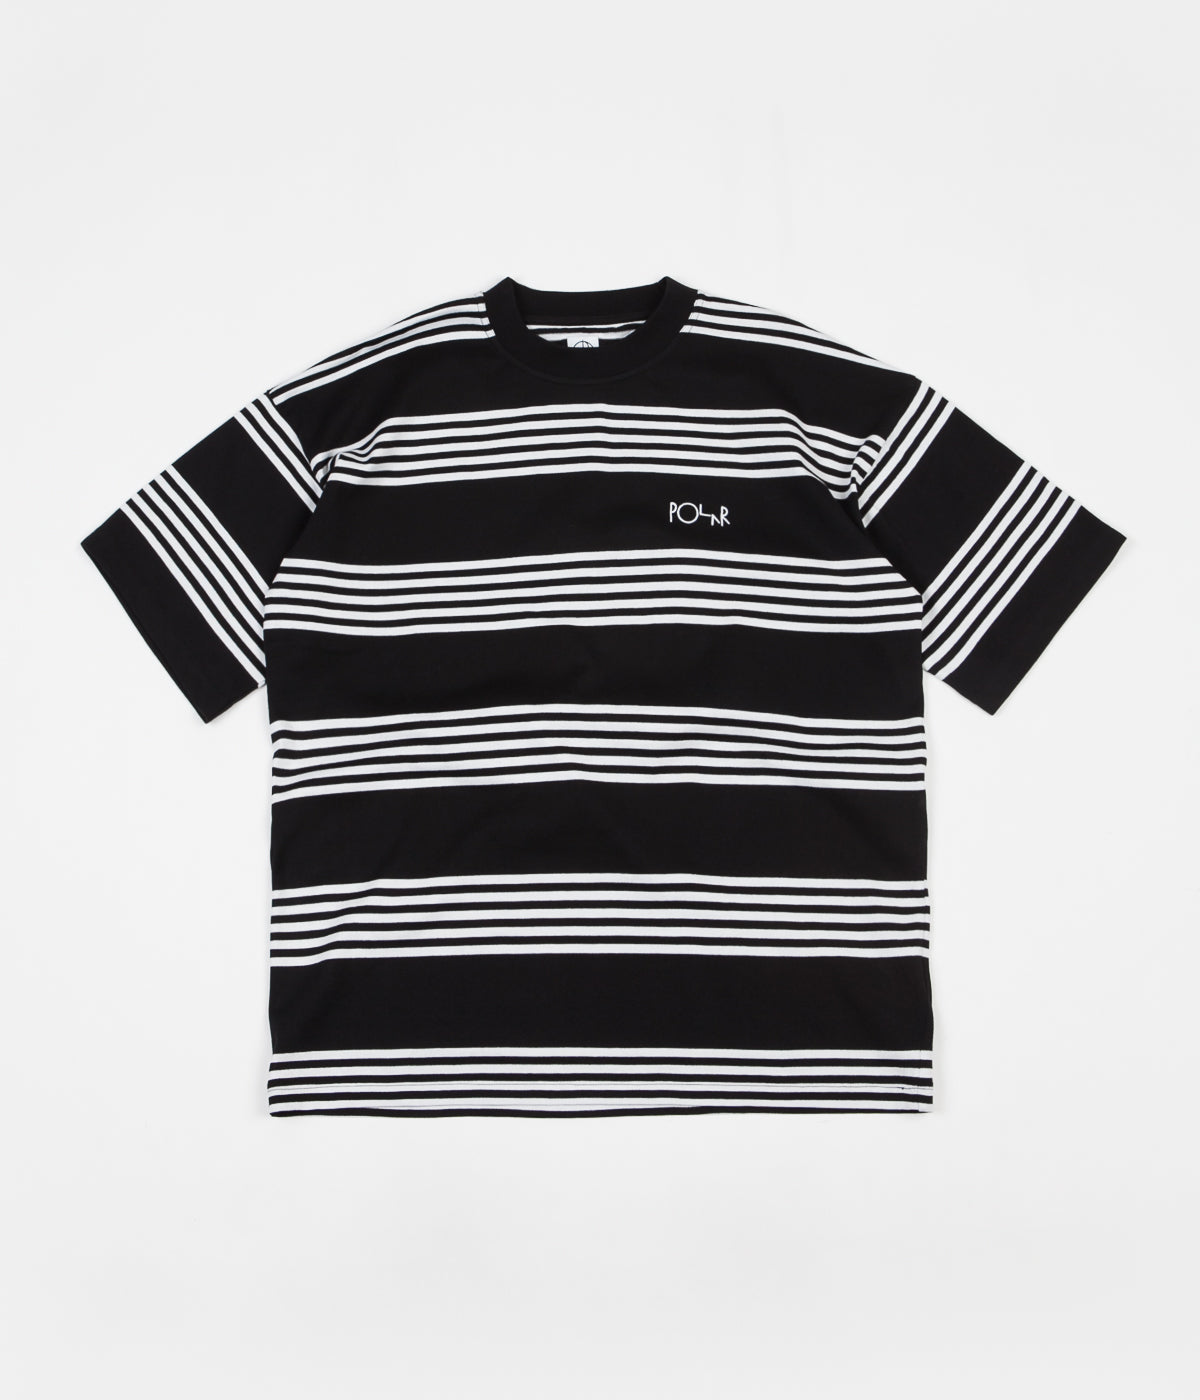 Polar Striped Surf T-Shirt - Black / White